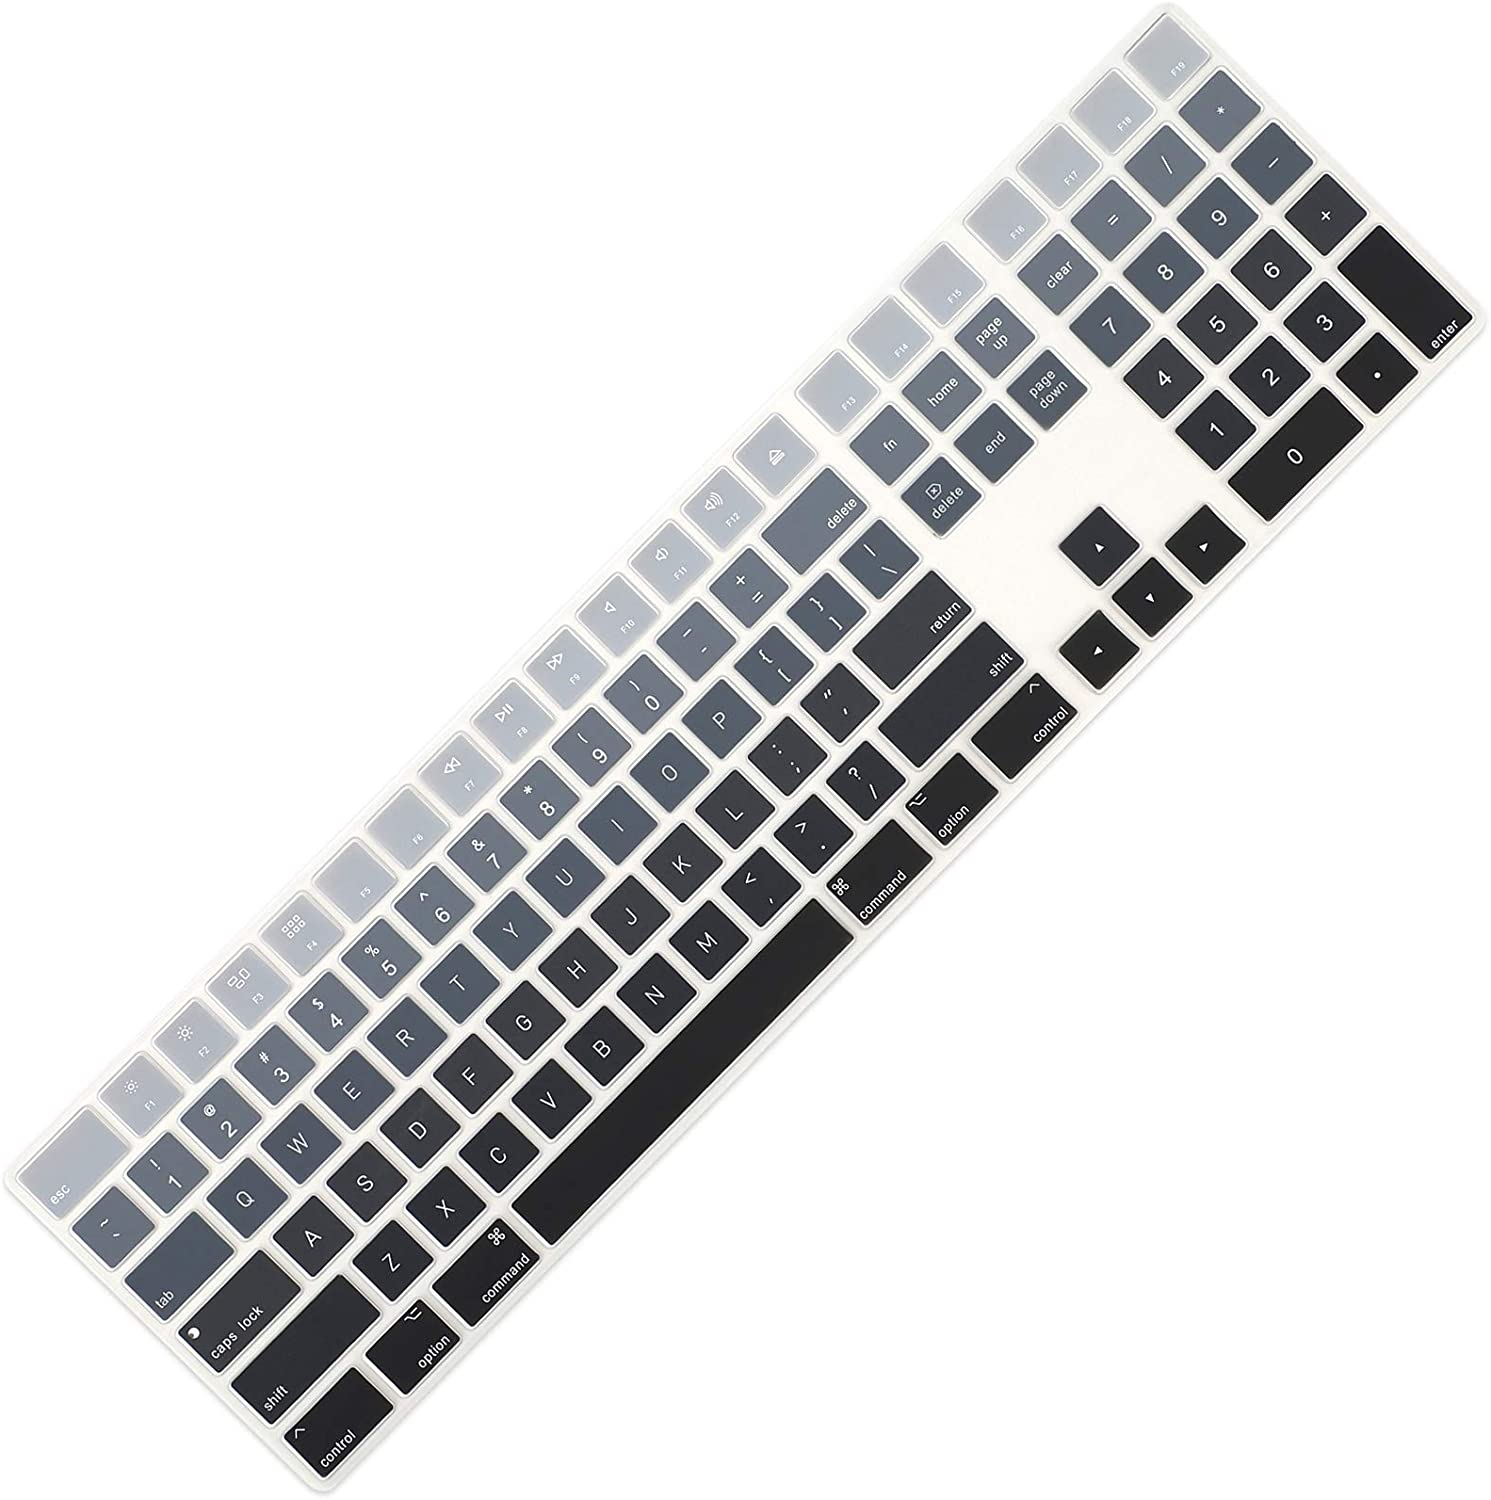 Allinside Ombre Gray Cover for Apple iMac Magic Keyboard with Numeric Keypad MQ052LL/A A1843 US Layout